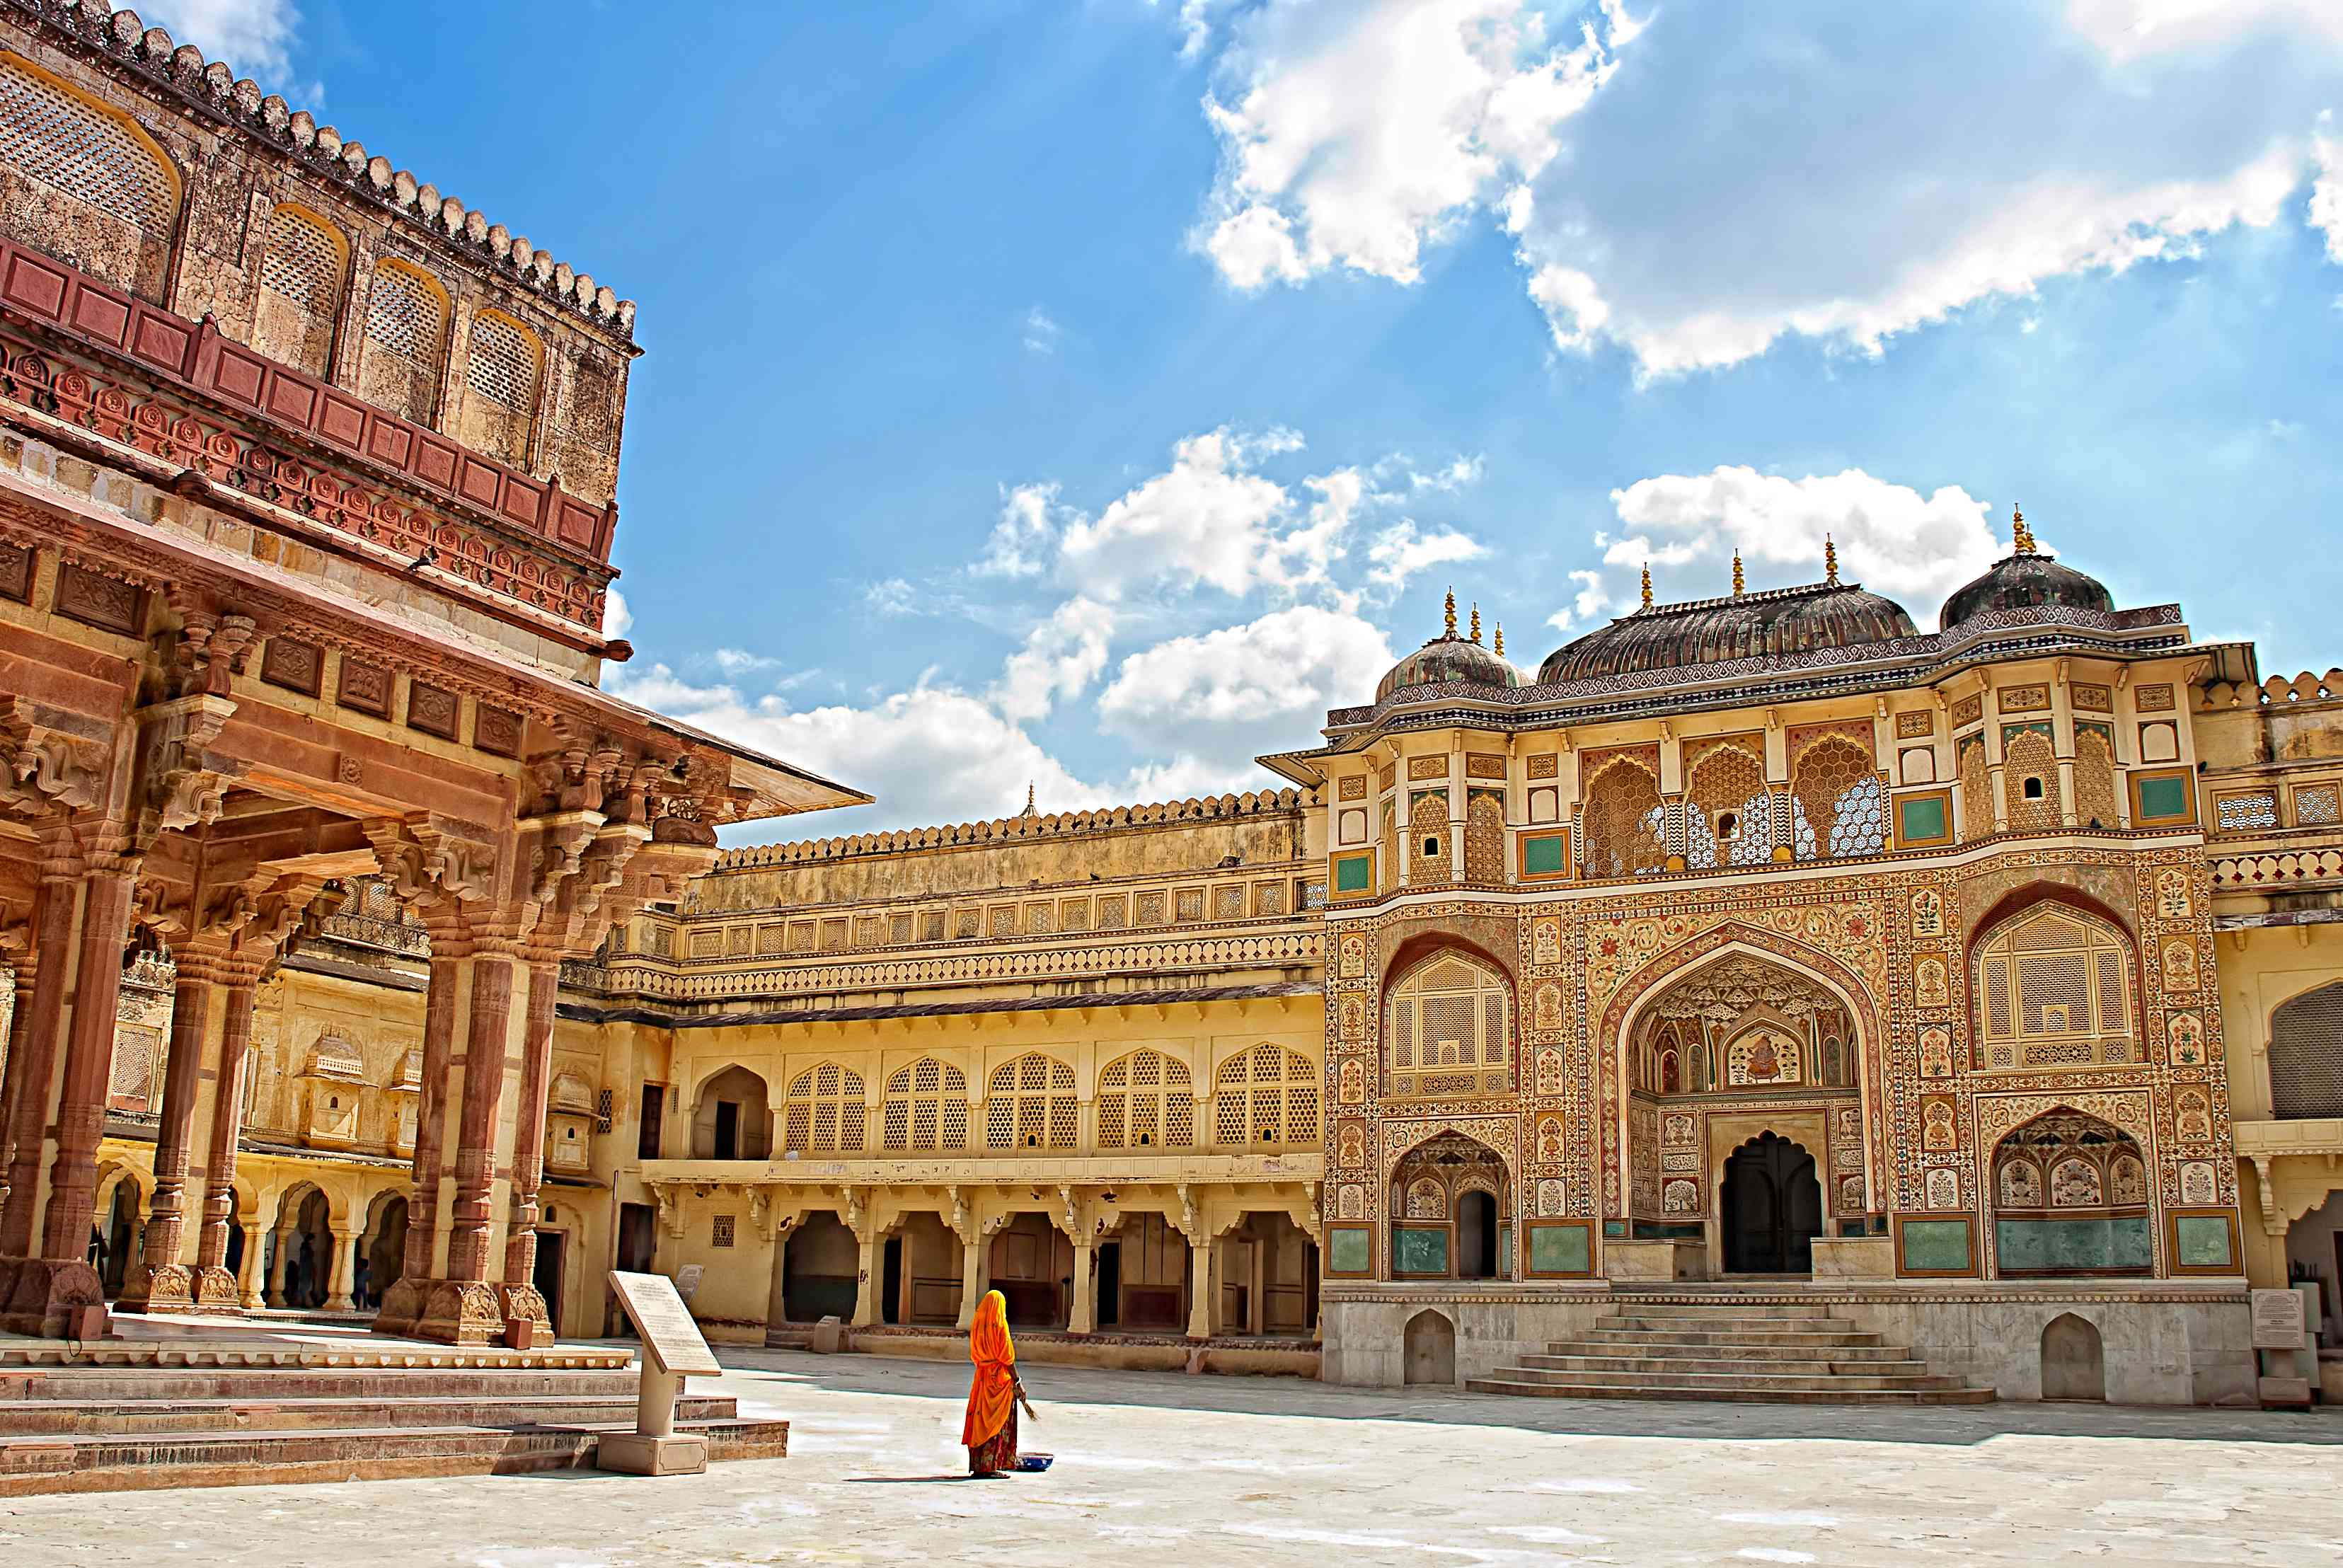 Marvel at the beautiful Amber fort